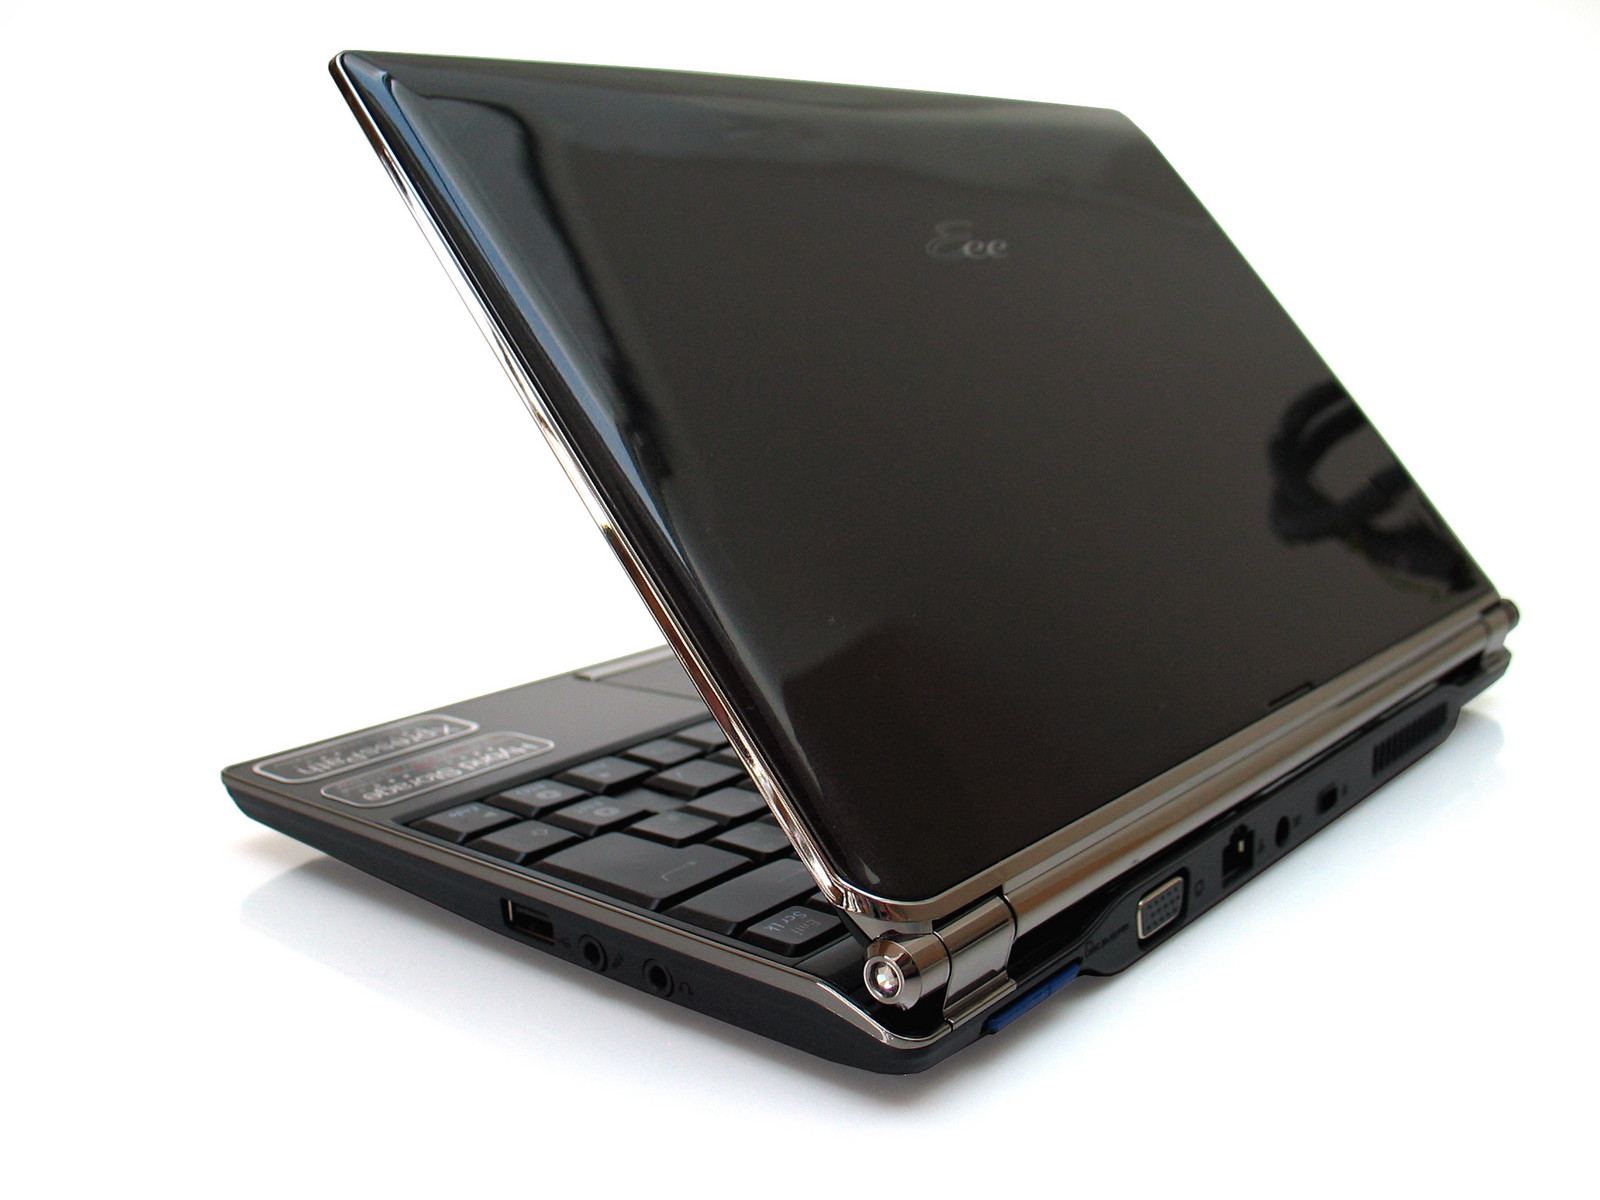 Asus Eee PC S101/XP VGA Drivers for Windows